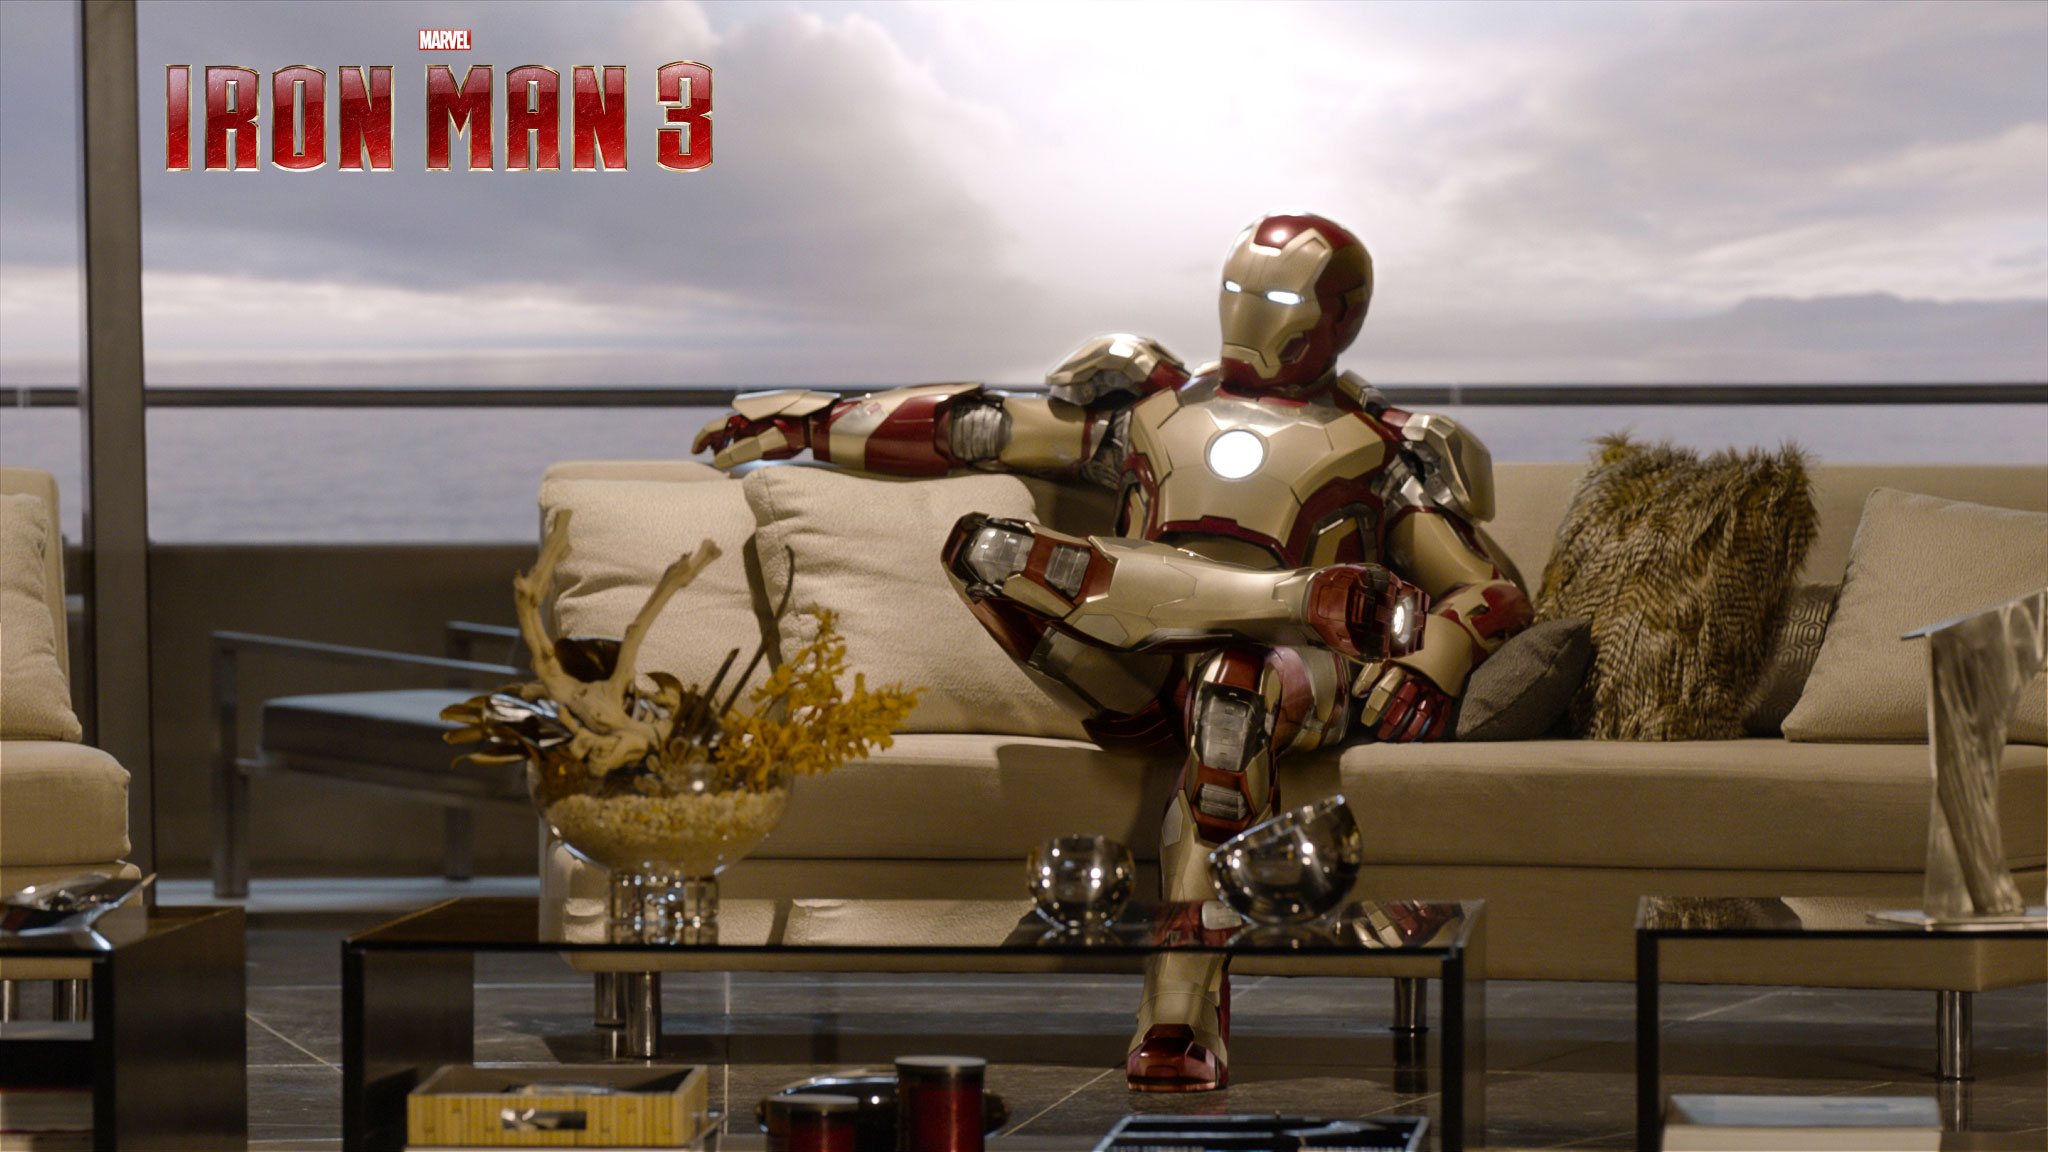 Ironman 3 Sitting Google Cover